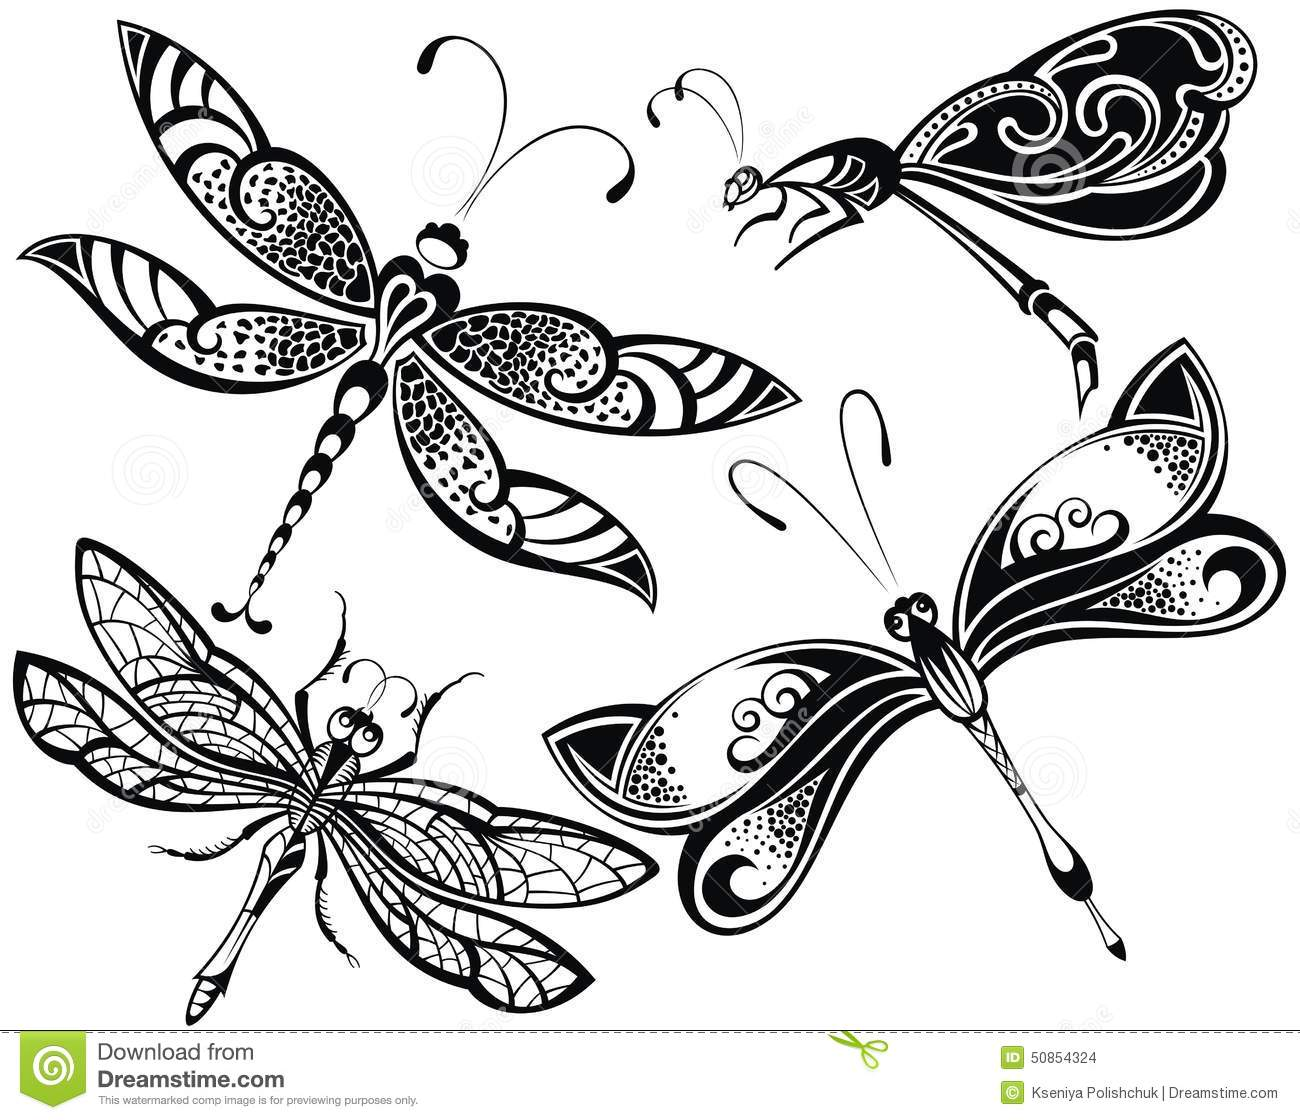 drawings of butterflies and dragonflies